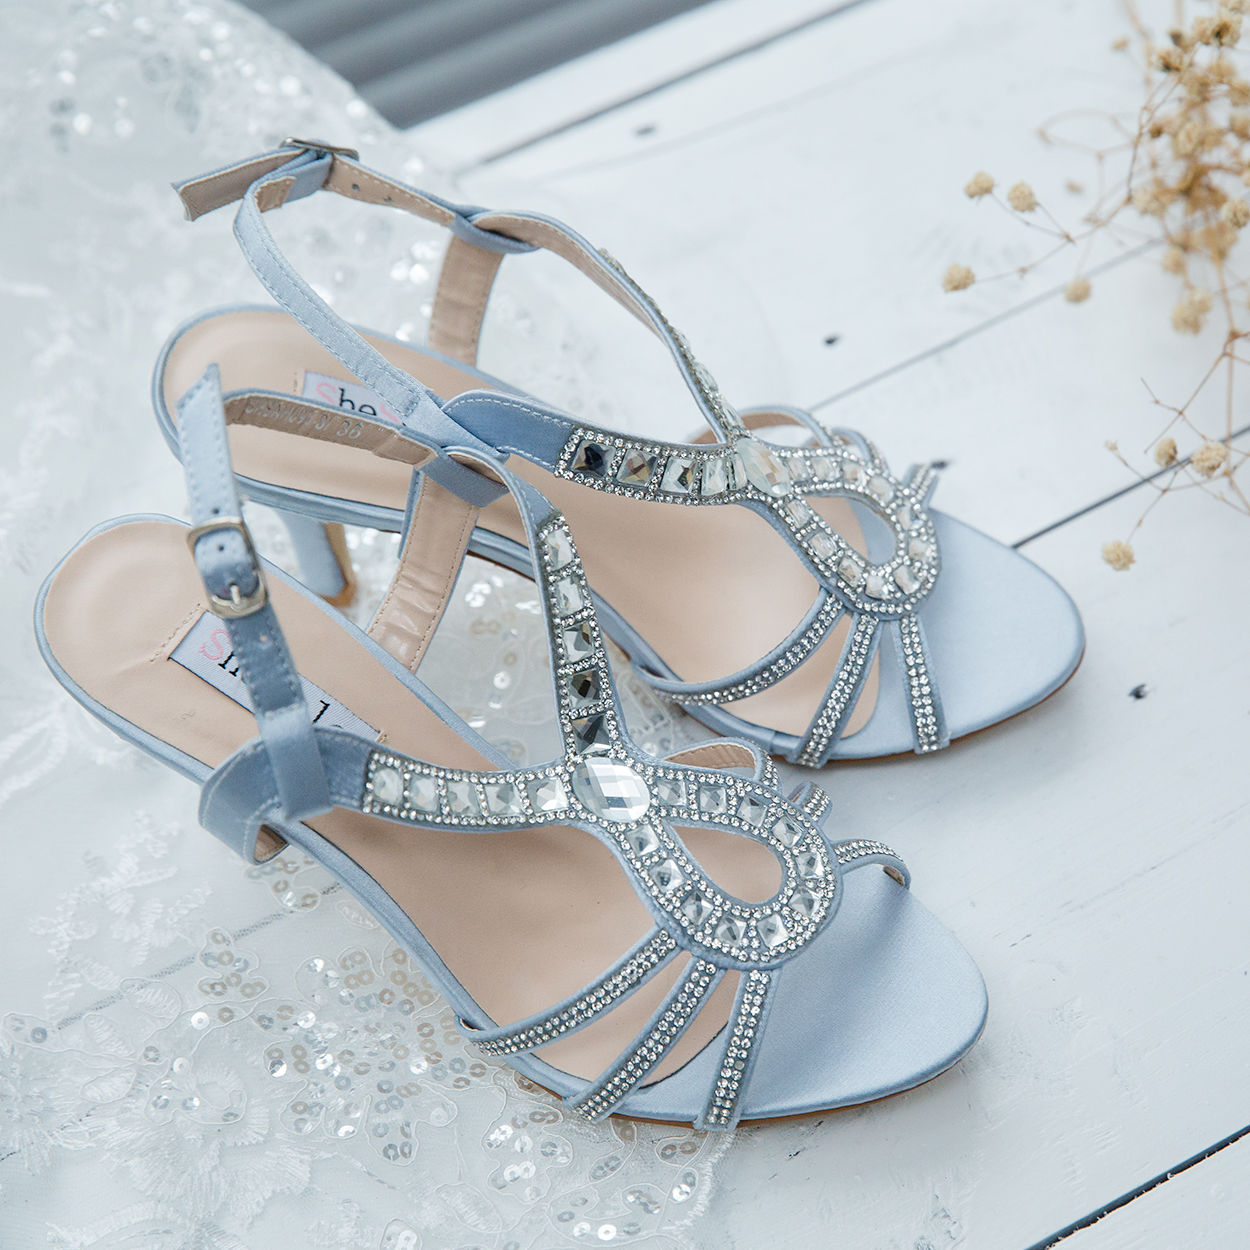 FREE SHIP SheSole Women\'s Wedding Shoes Dress Sandals High Heels ...